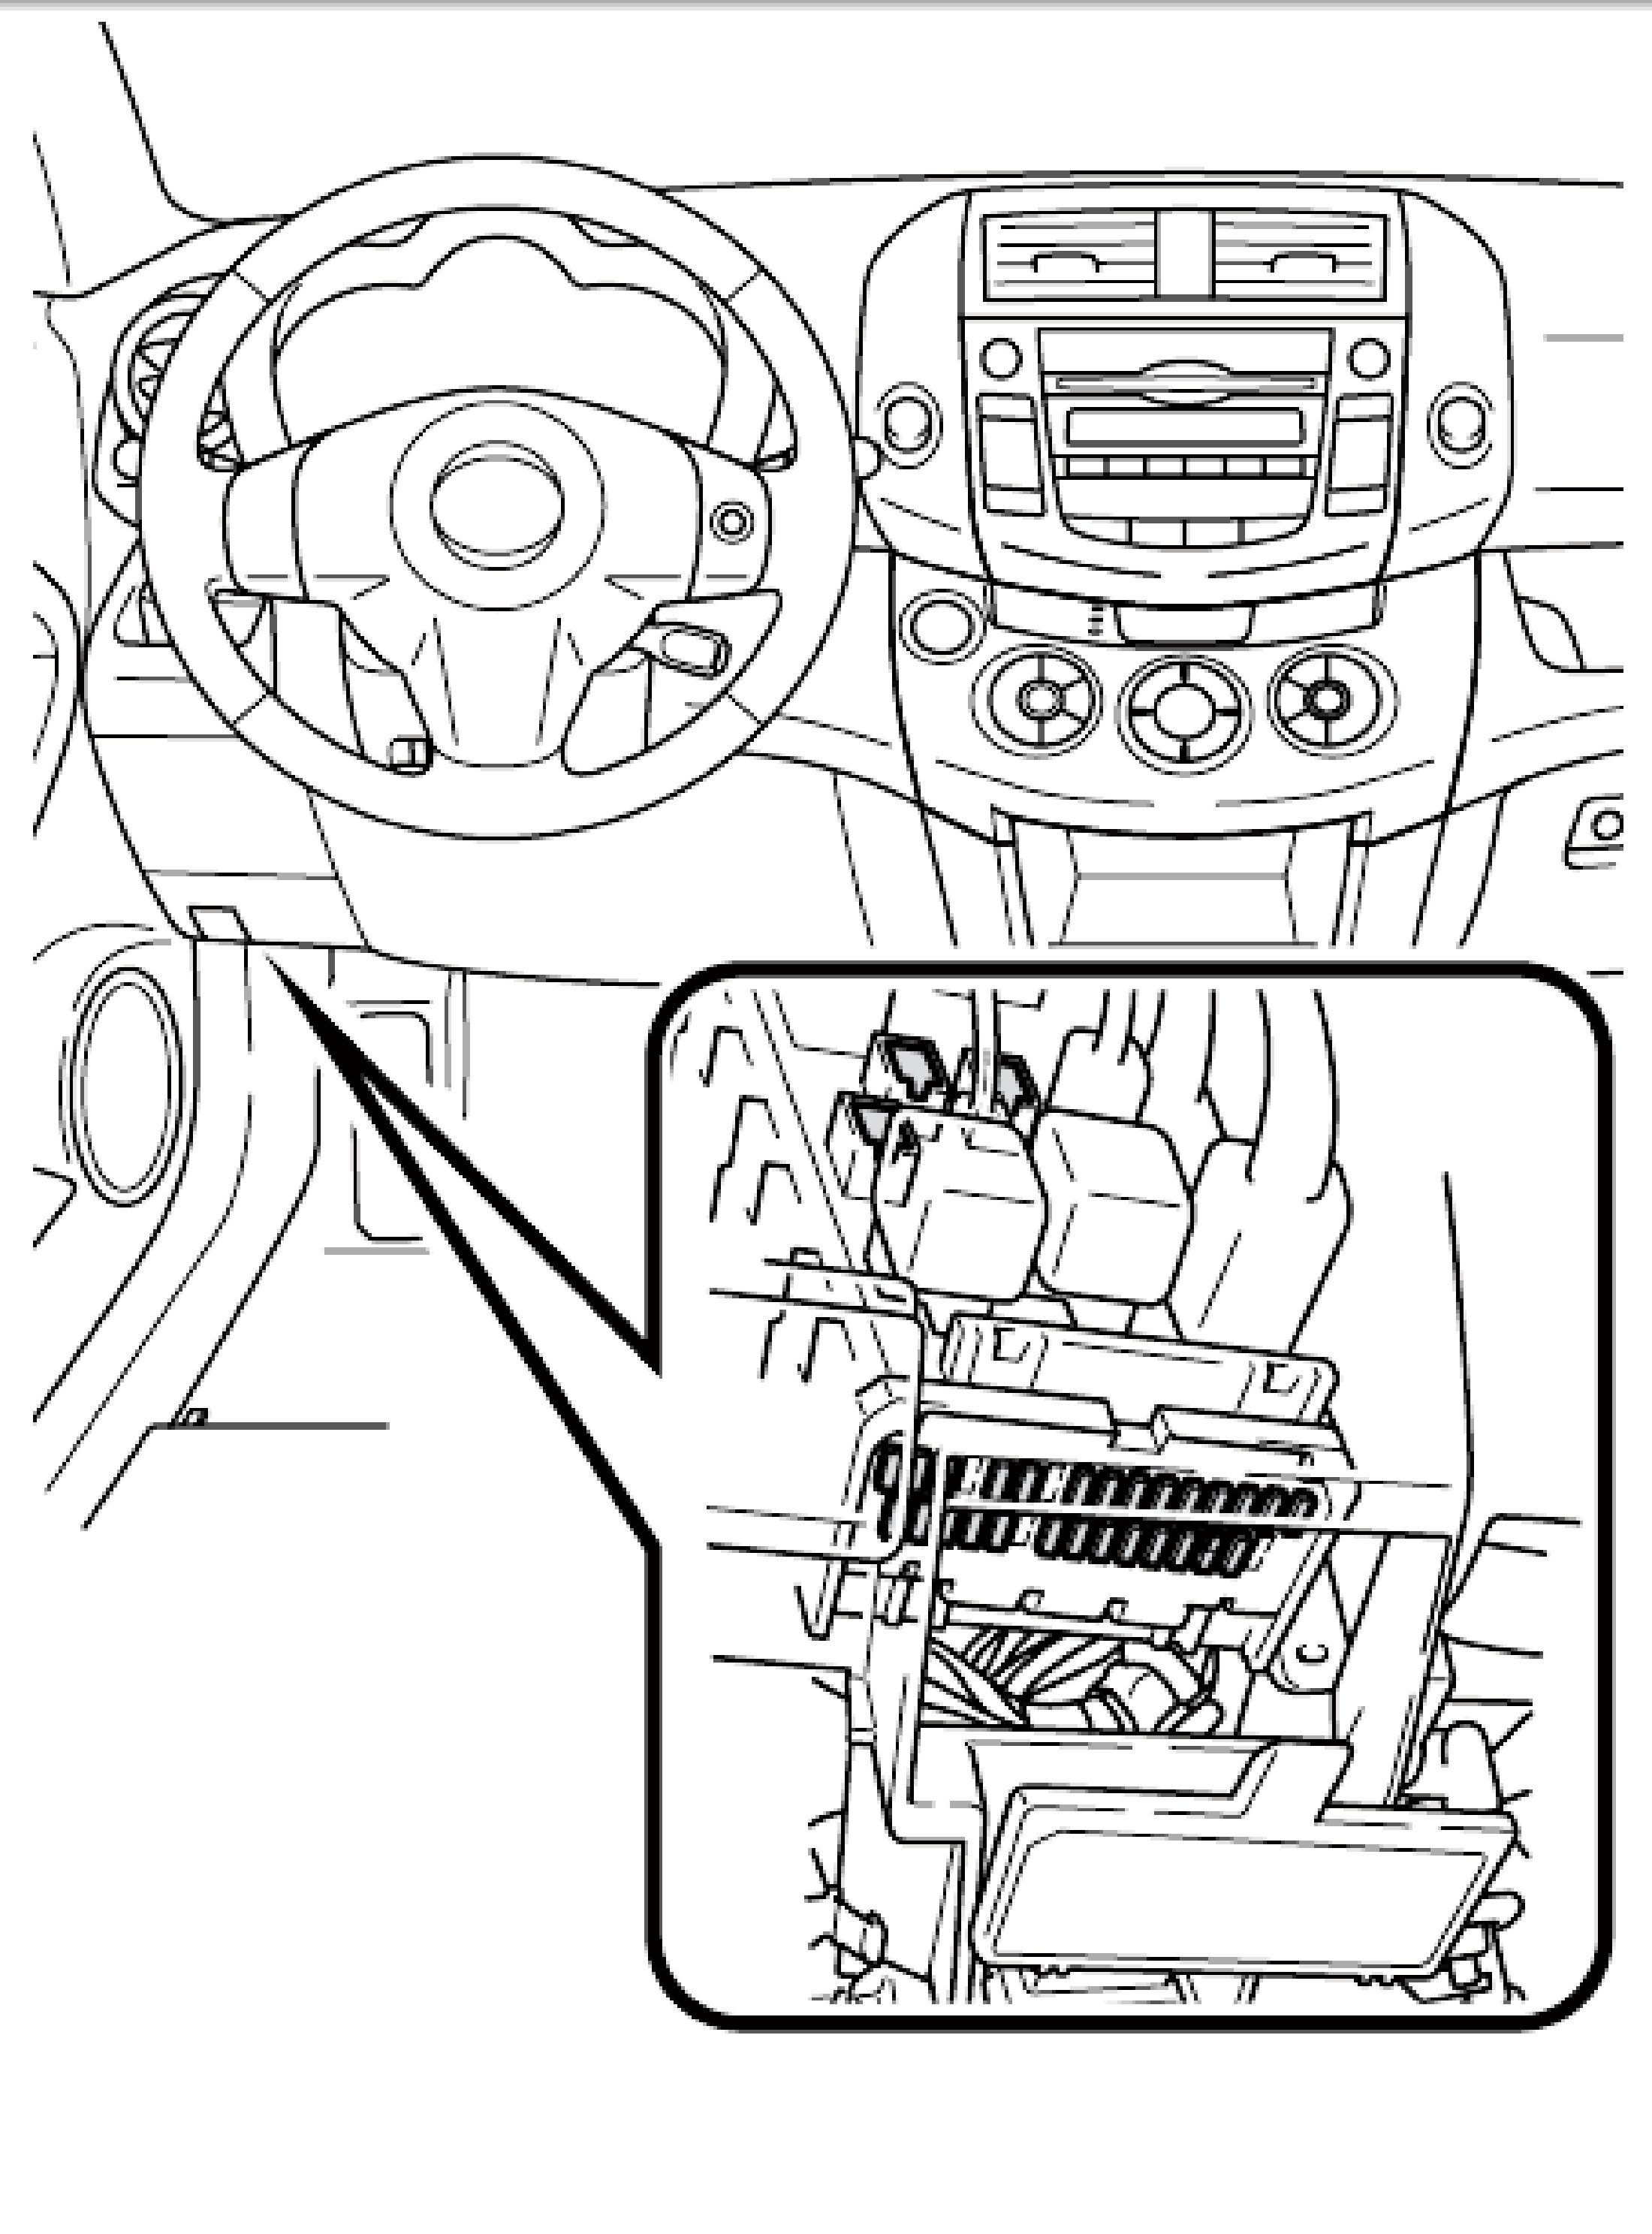 Toyota Avensis Fuse Box Location Wiring Diagrams For 2002 Solara Diagram Html Imageresizertool Com 2008